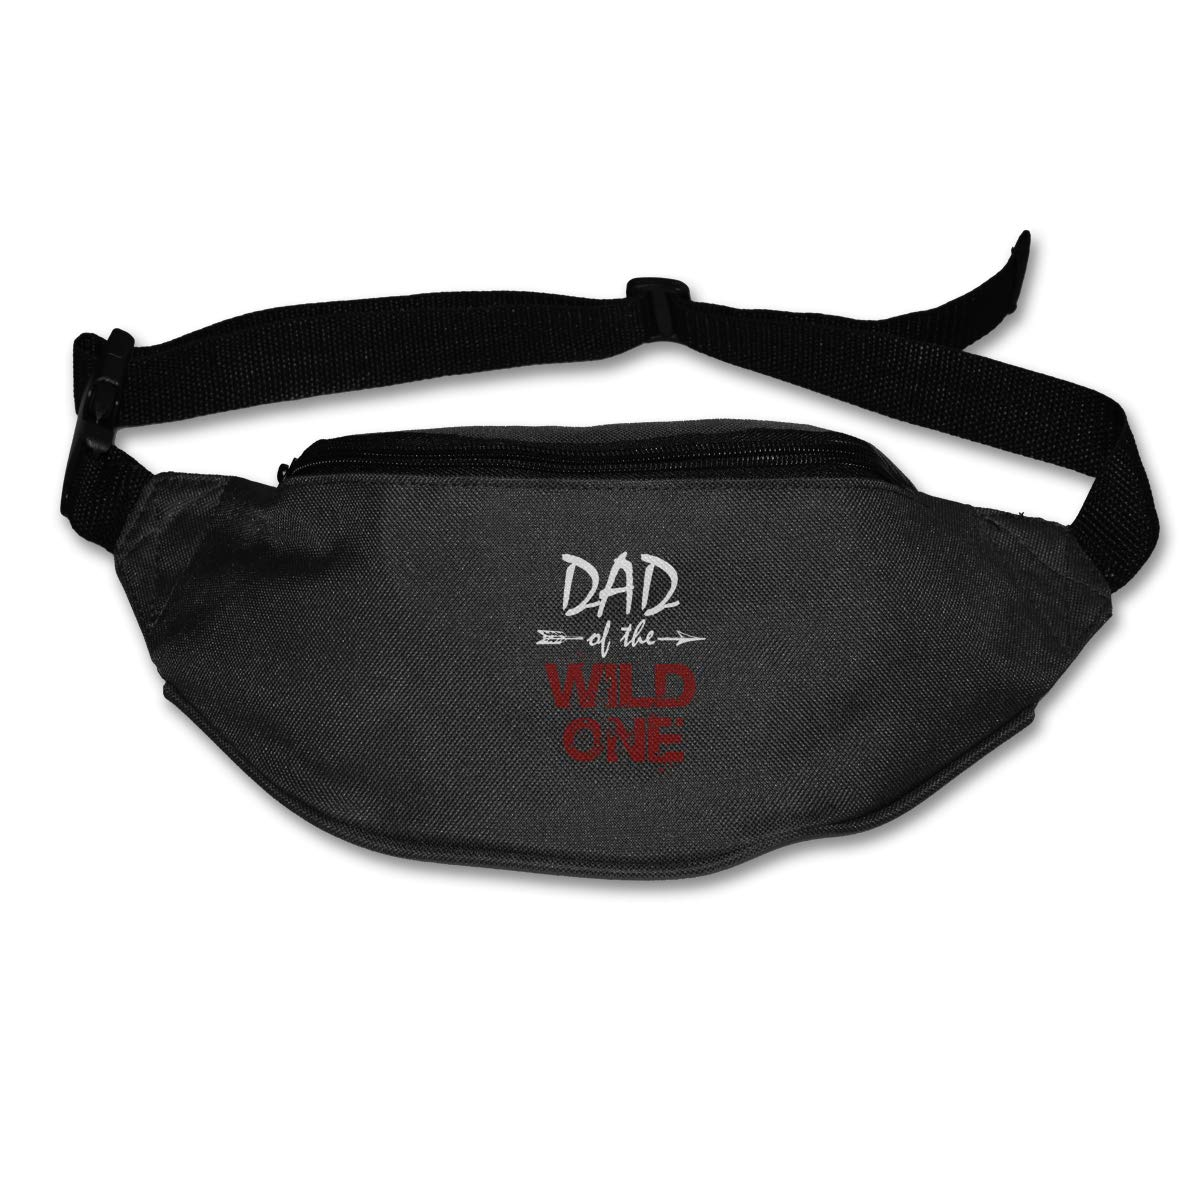 Dad Of The Wild One Sport Waist Bag Fanny Pack Adjustable For Travel